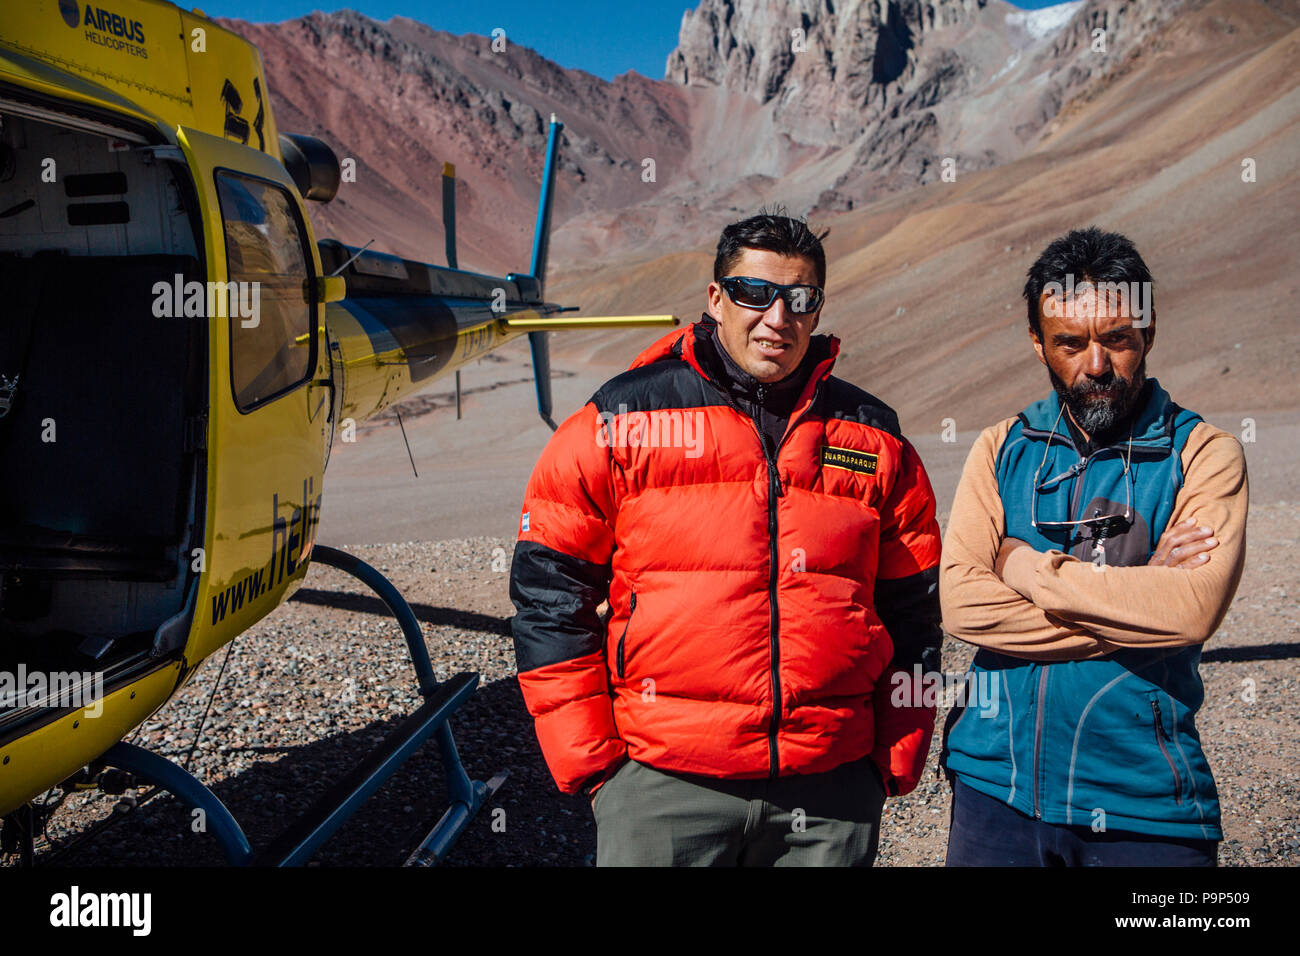 Park rangers stand outside a helicopter in Aconcagua Provincial Park, Argentina. Helicopters play a major role in delivering supplies and conducting rescues in the park. - Stock Image